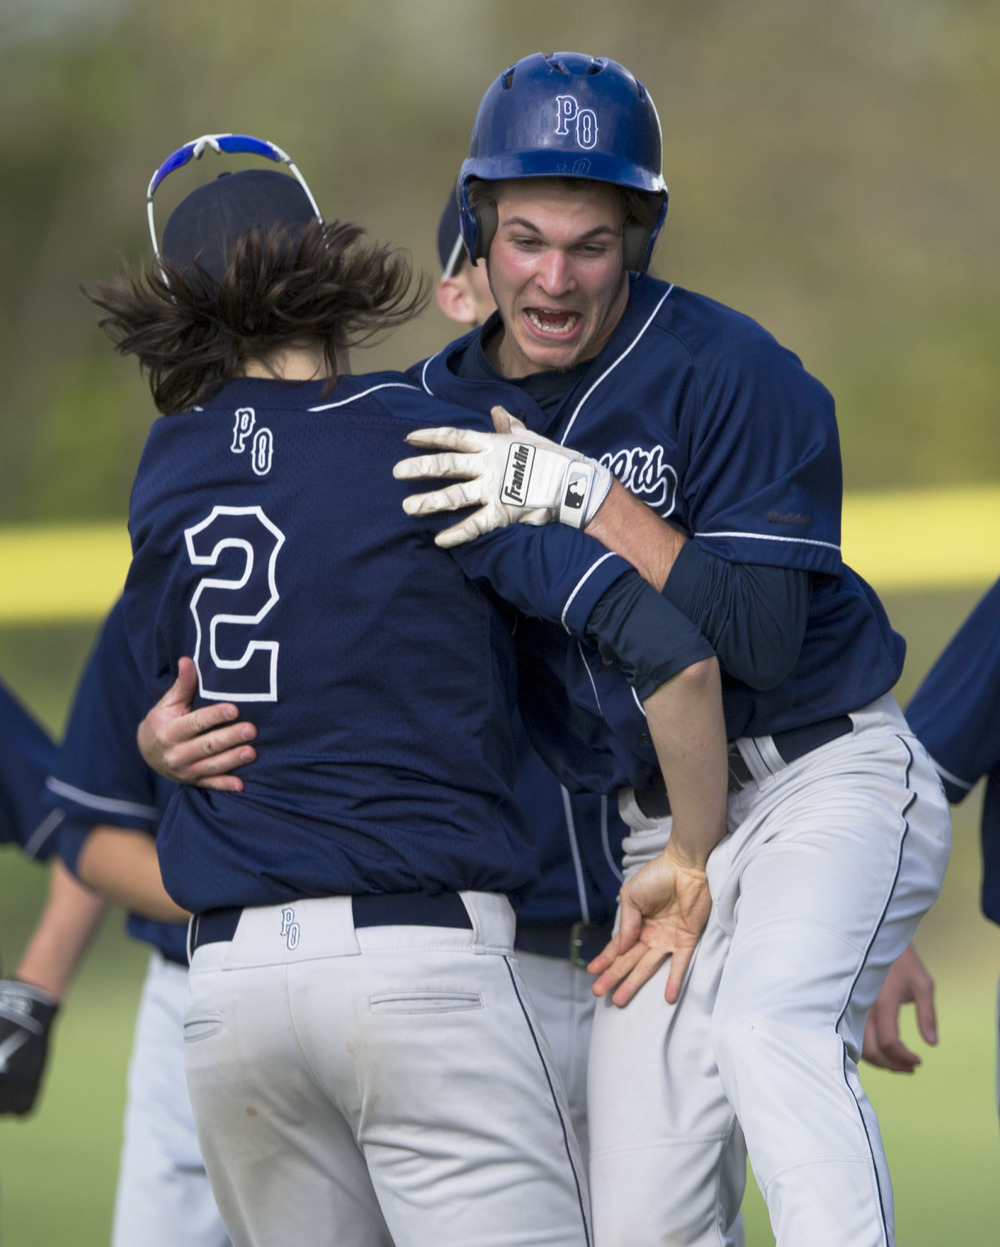 Phillipsburg-Osceola third baseman Noah Jeffries (2) and center fielder Caleb Belinda (23) celebrate after the team's 4-3 victory over Chestnut Ridge in extra innings at Phillipsburg-Osceola High School on Thursday, May 19, 2016.